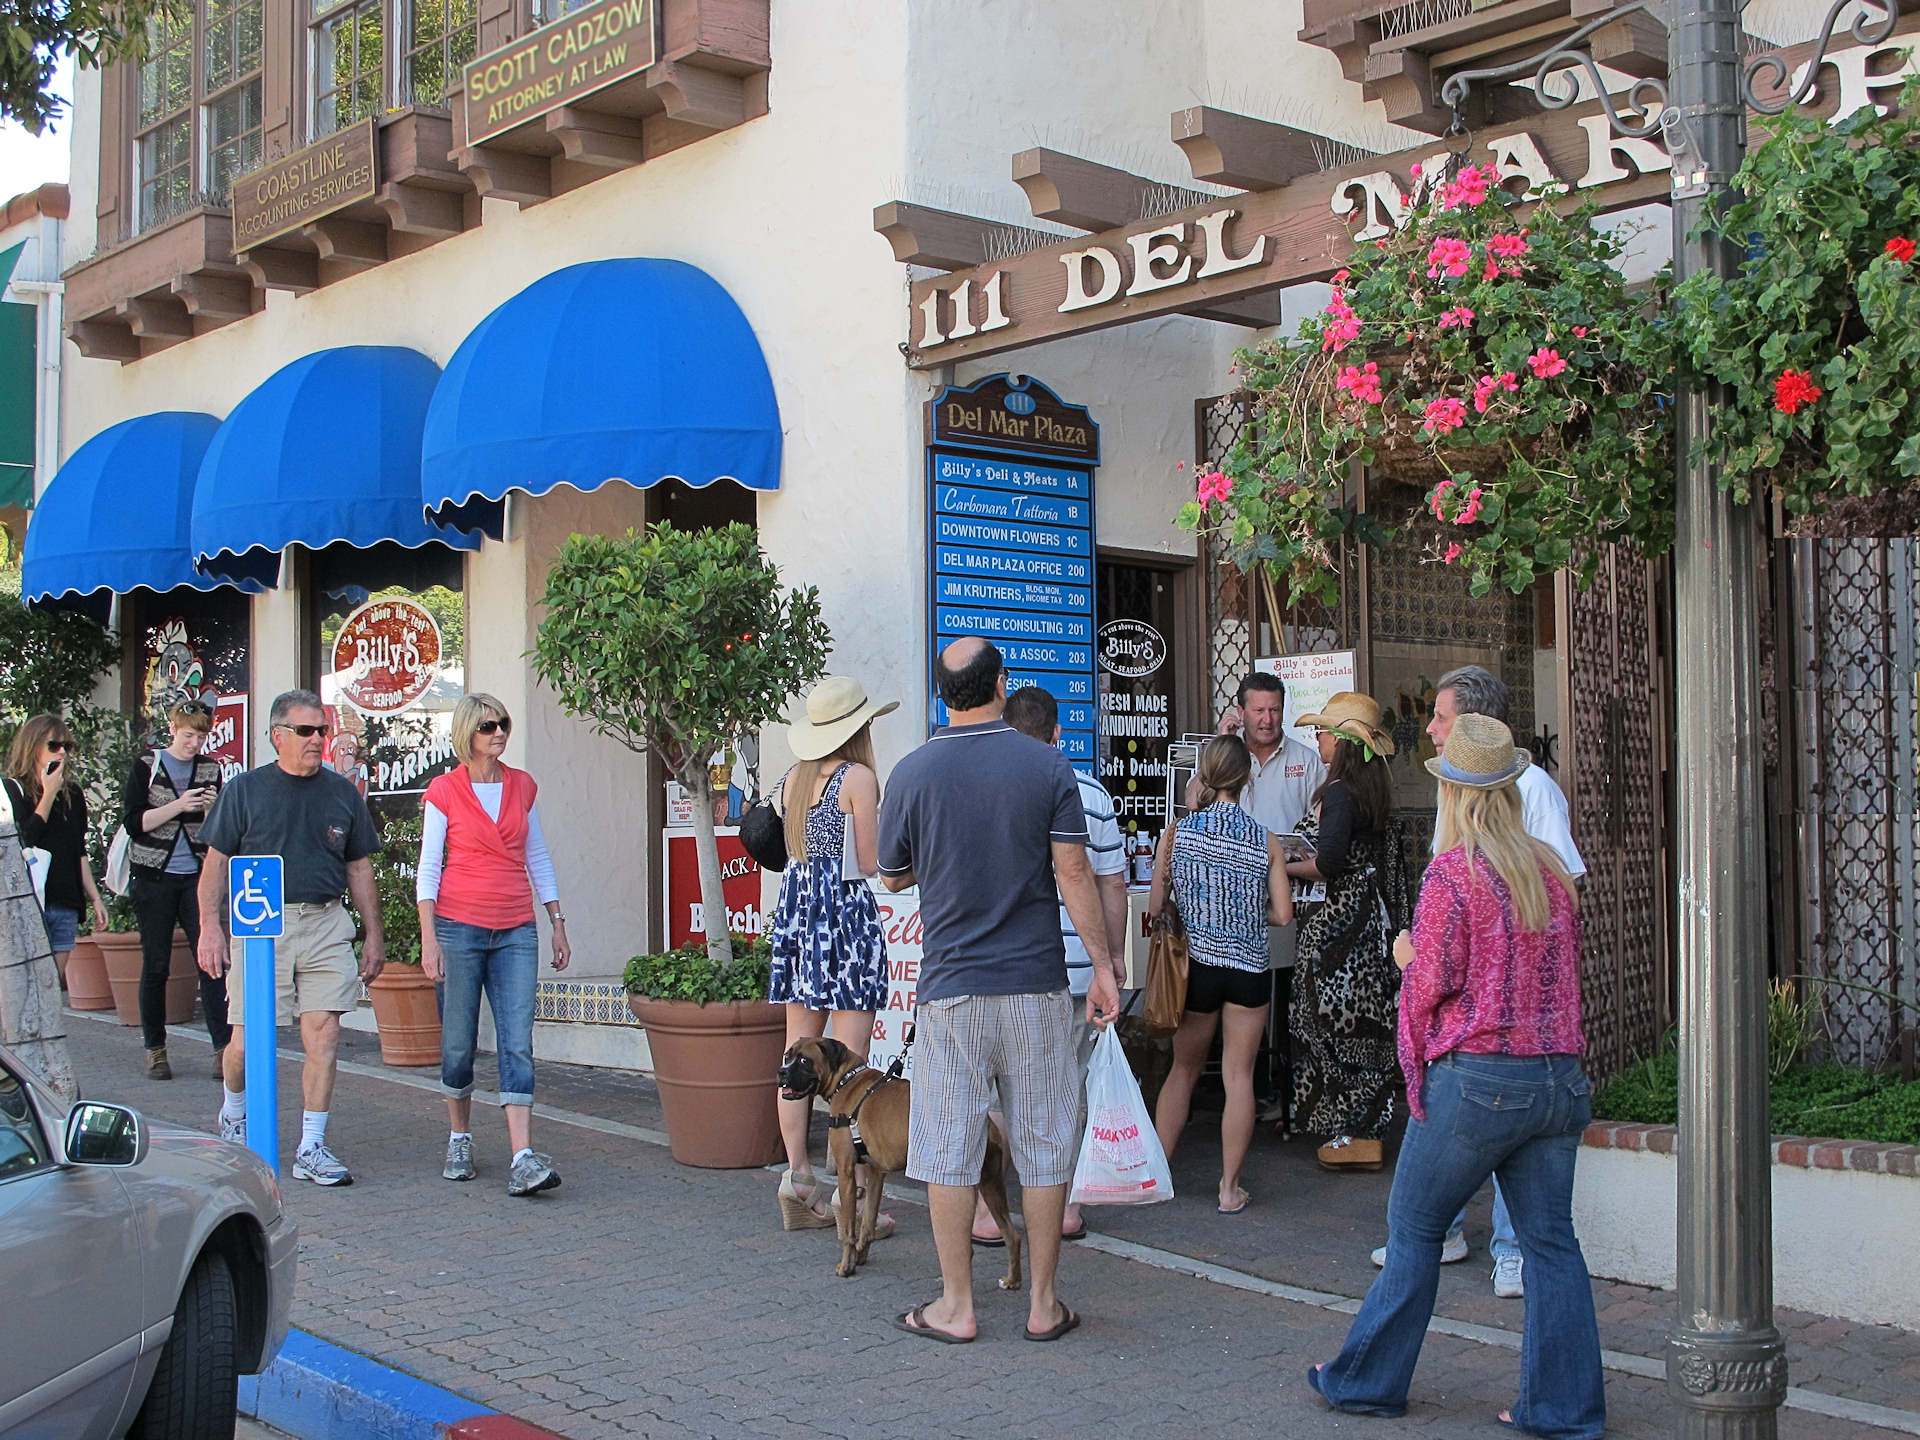 DowntownSanClemente.com